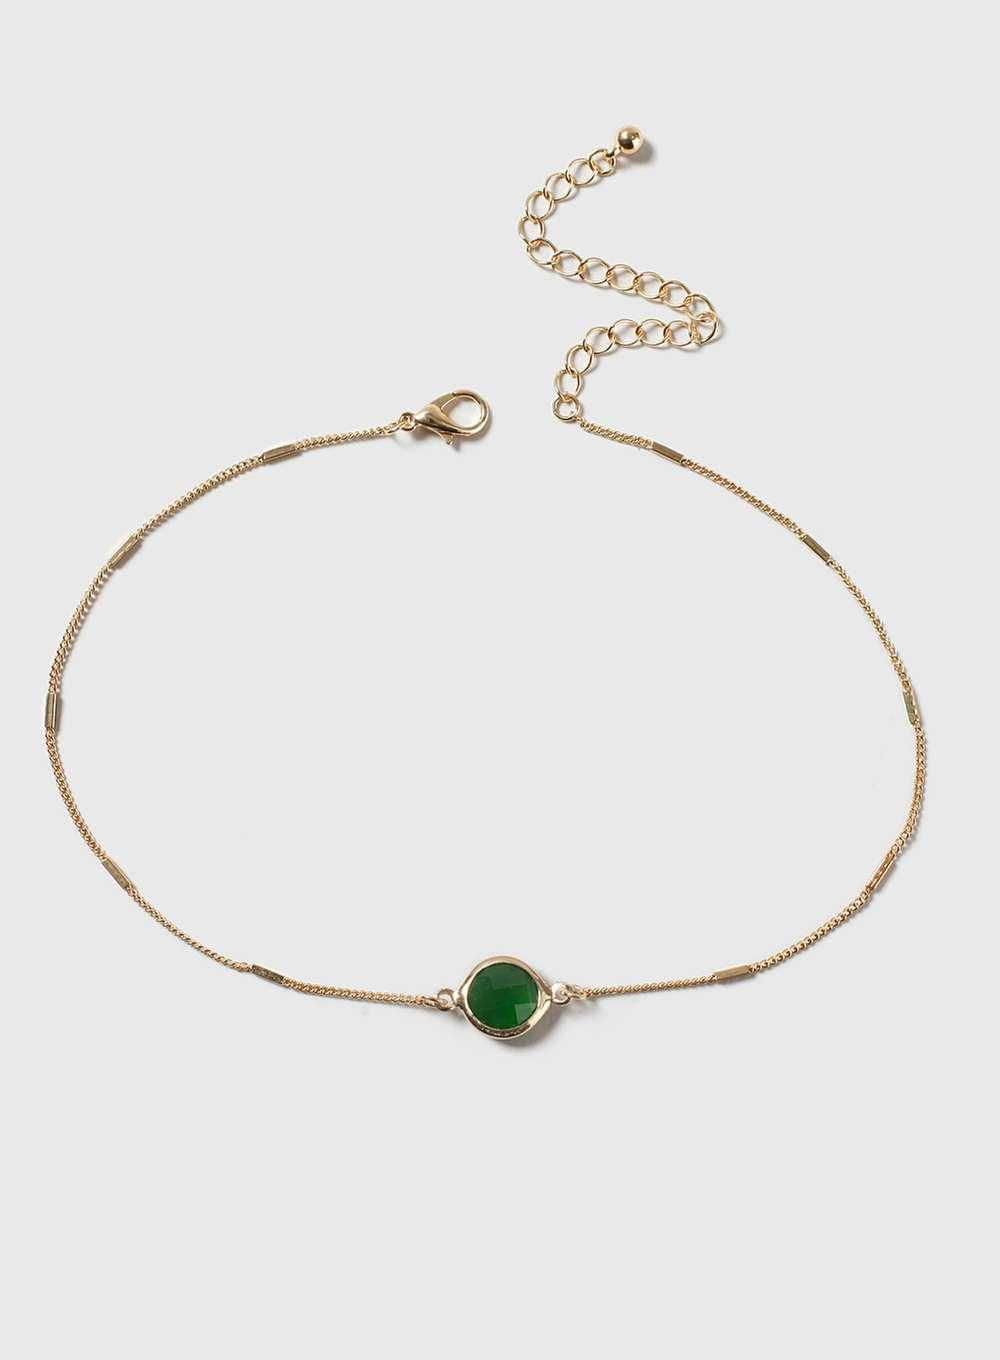 Dorothy Perkins May Birthstone Choker Necklace in Gold (Metallic)